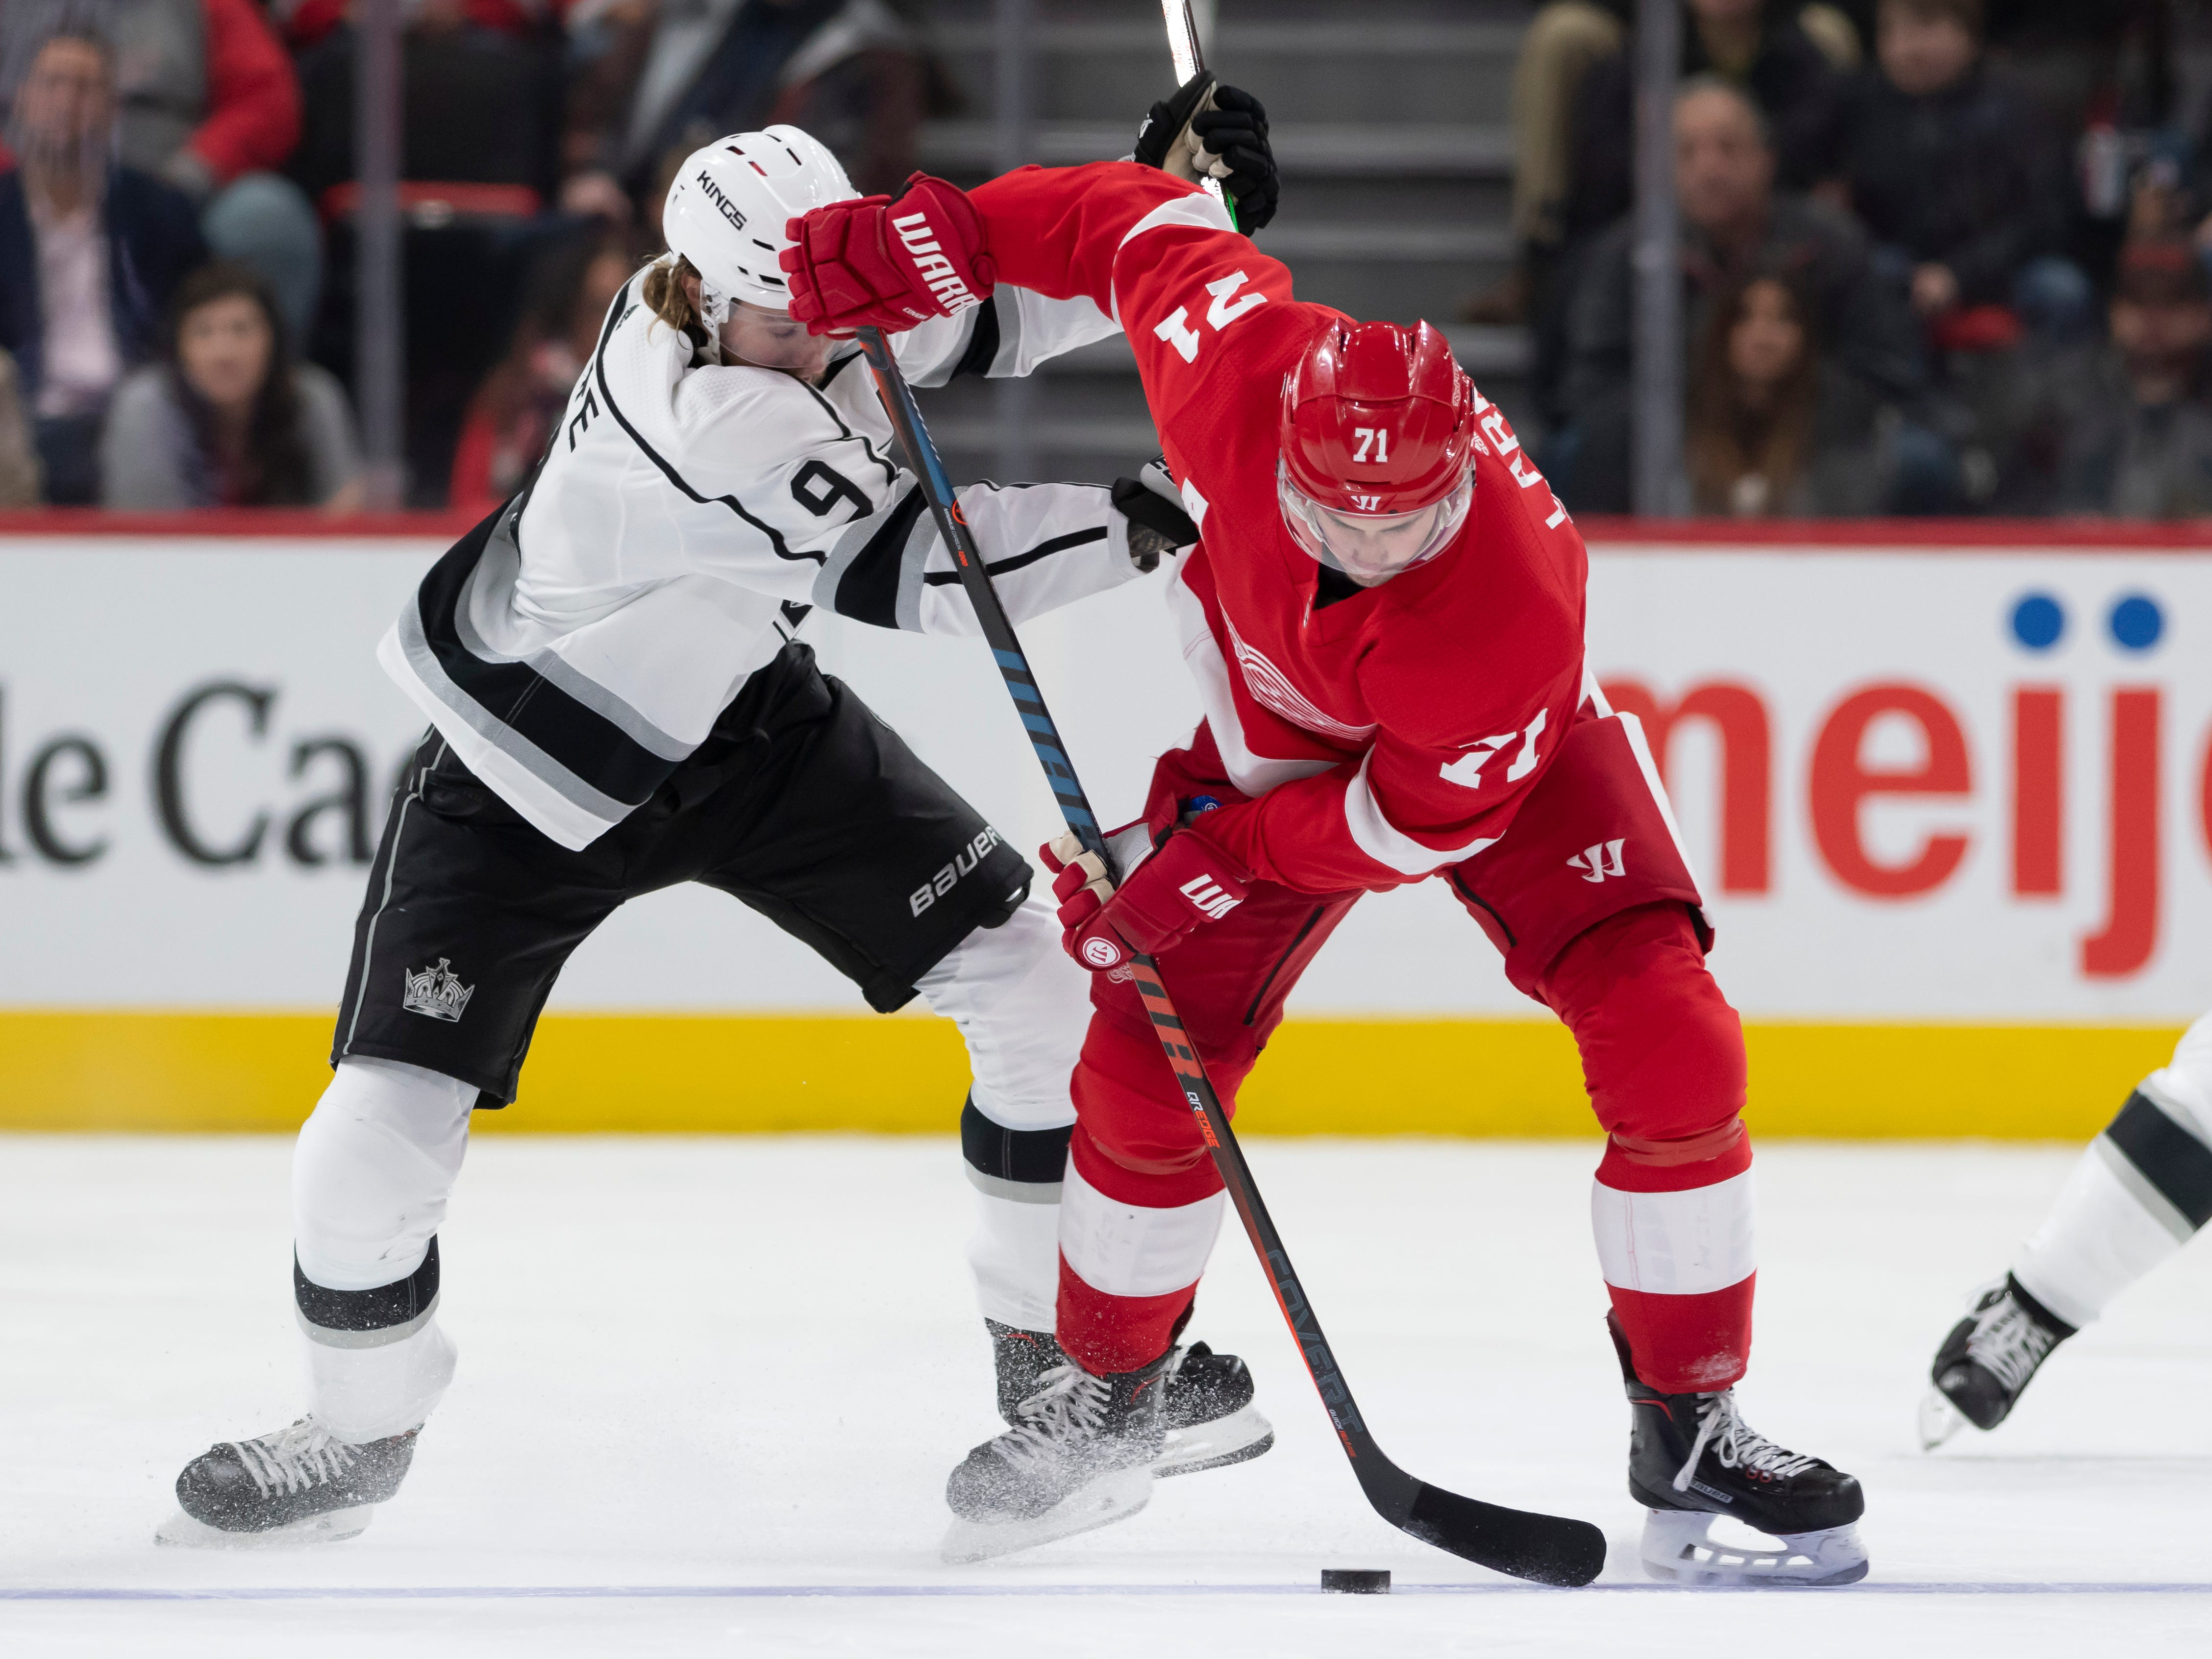 Detroit center Dylan Larkin and Los Angeles right wing Adrian Kempe battle for the puck in the second period.